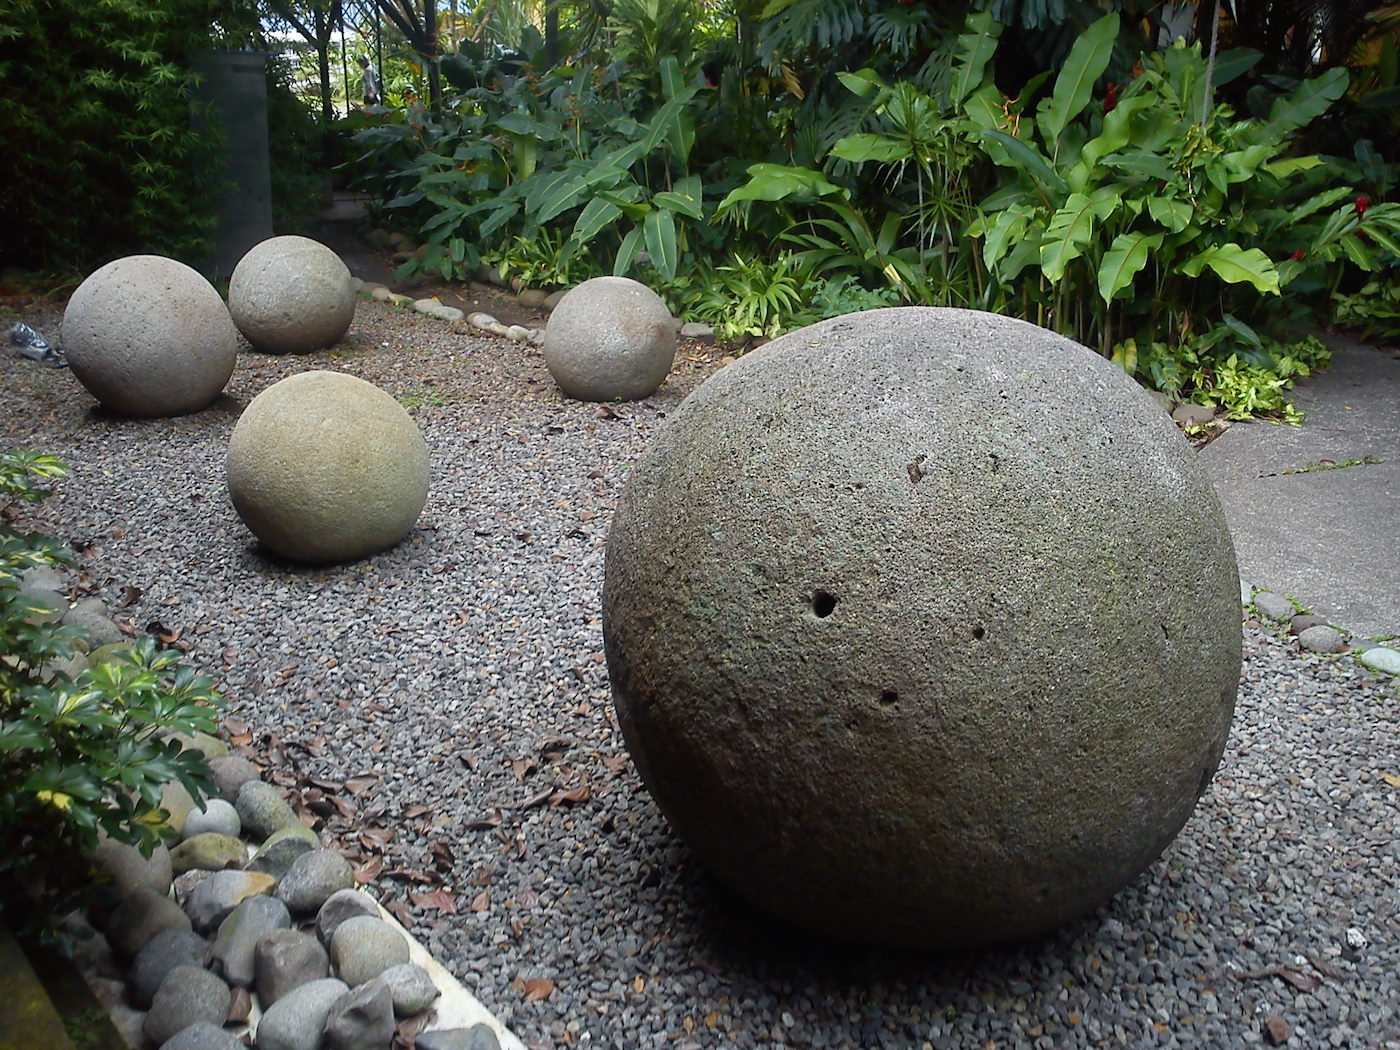 Perfectly round stone spheres, Costa Rica